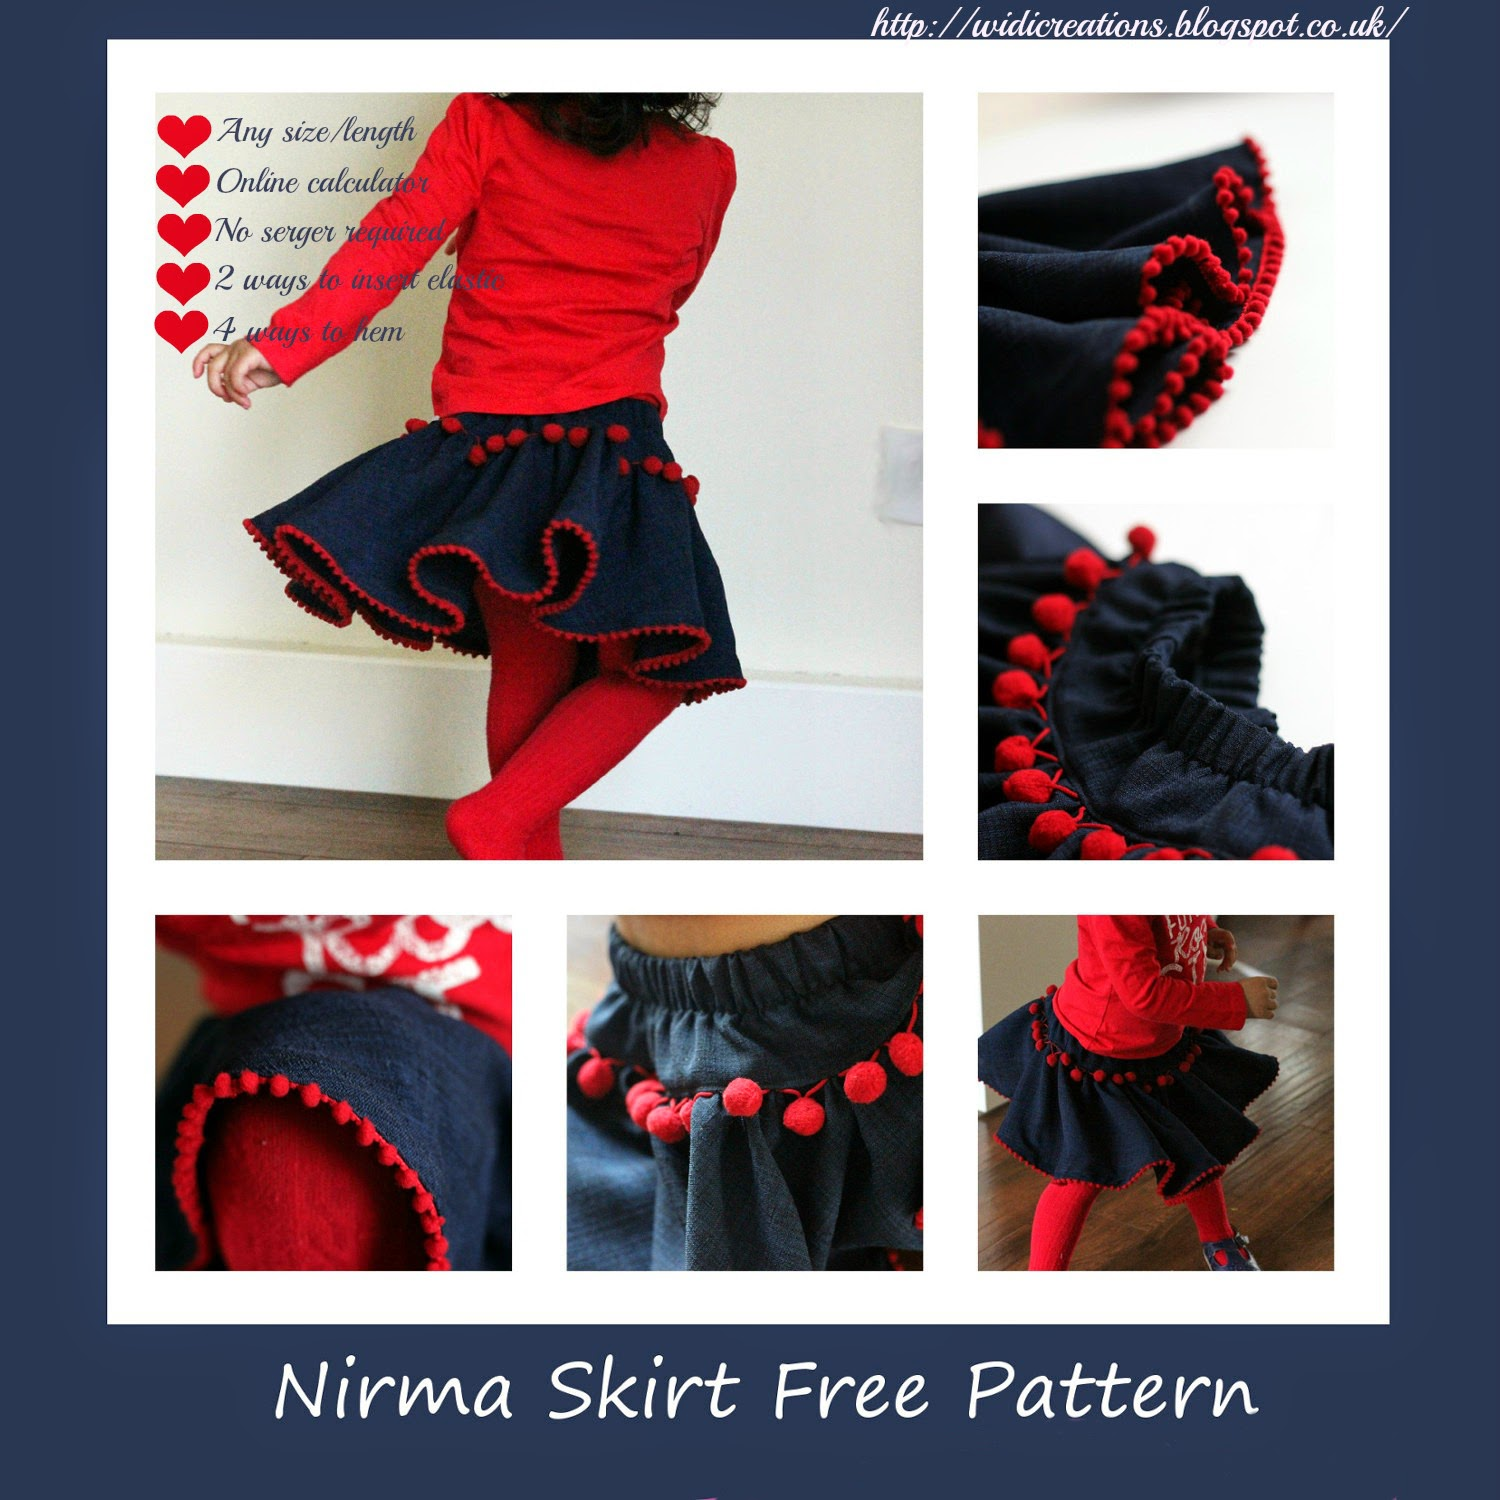 Nirma twirly skirt epattern with calculator and step by step instructions